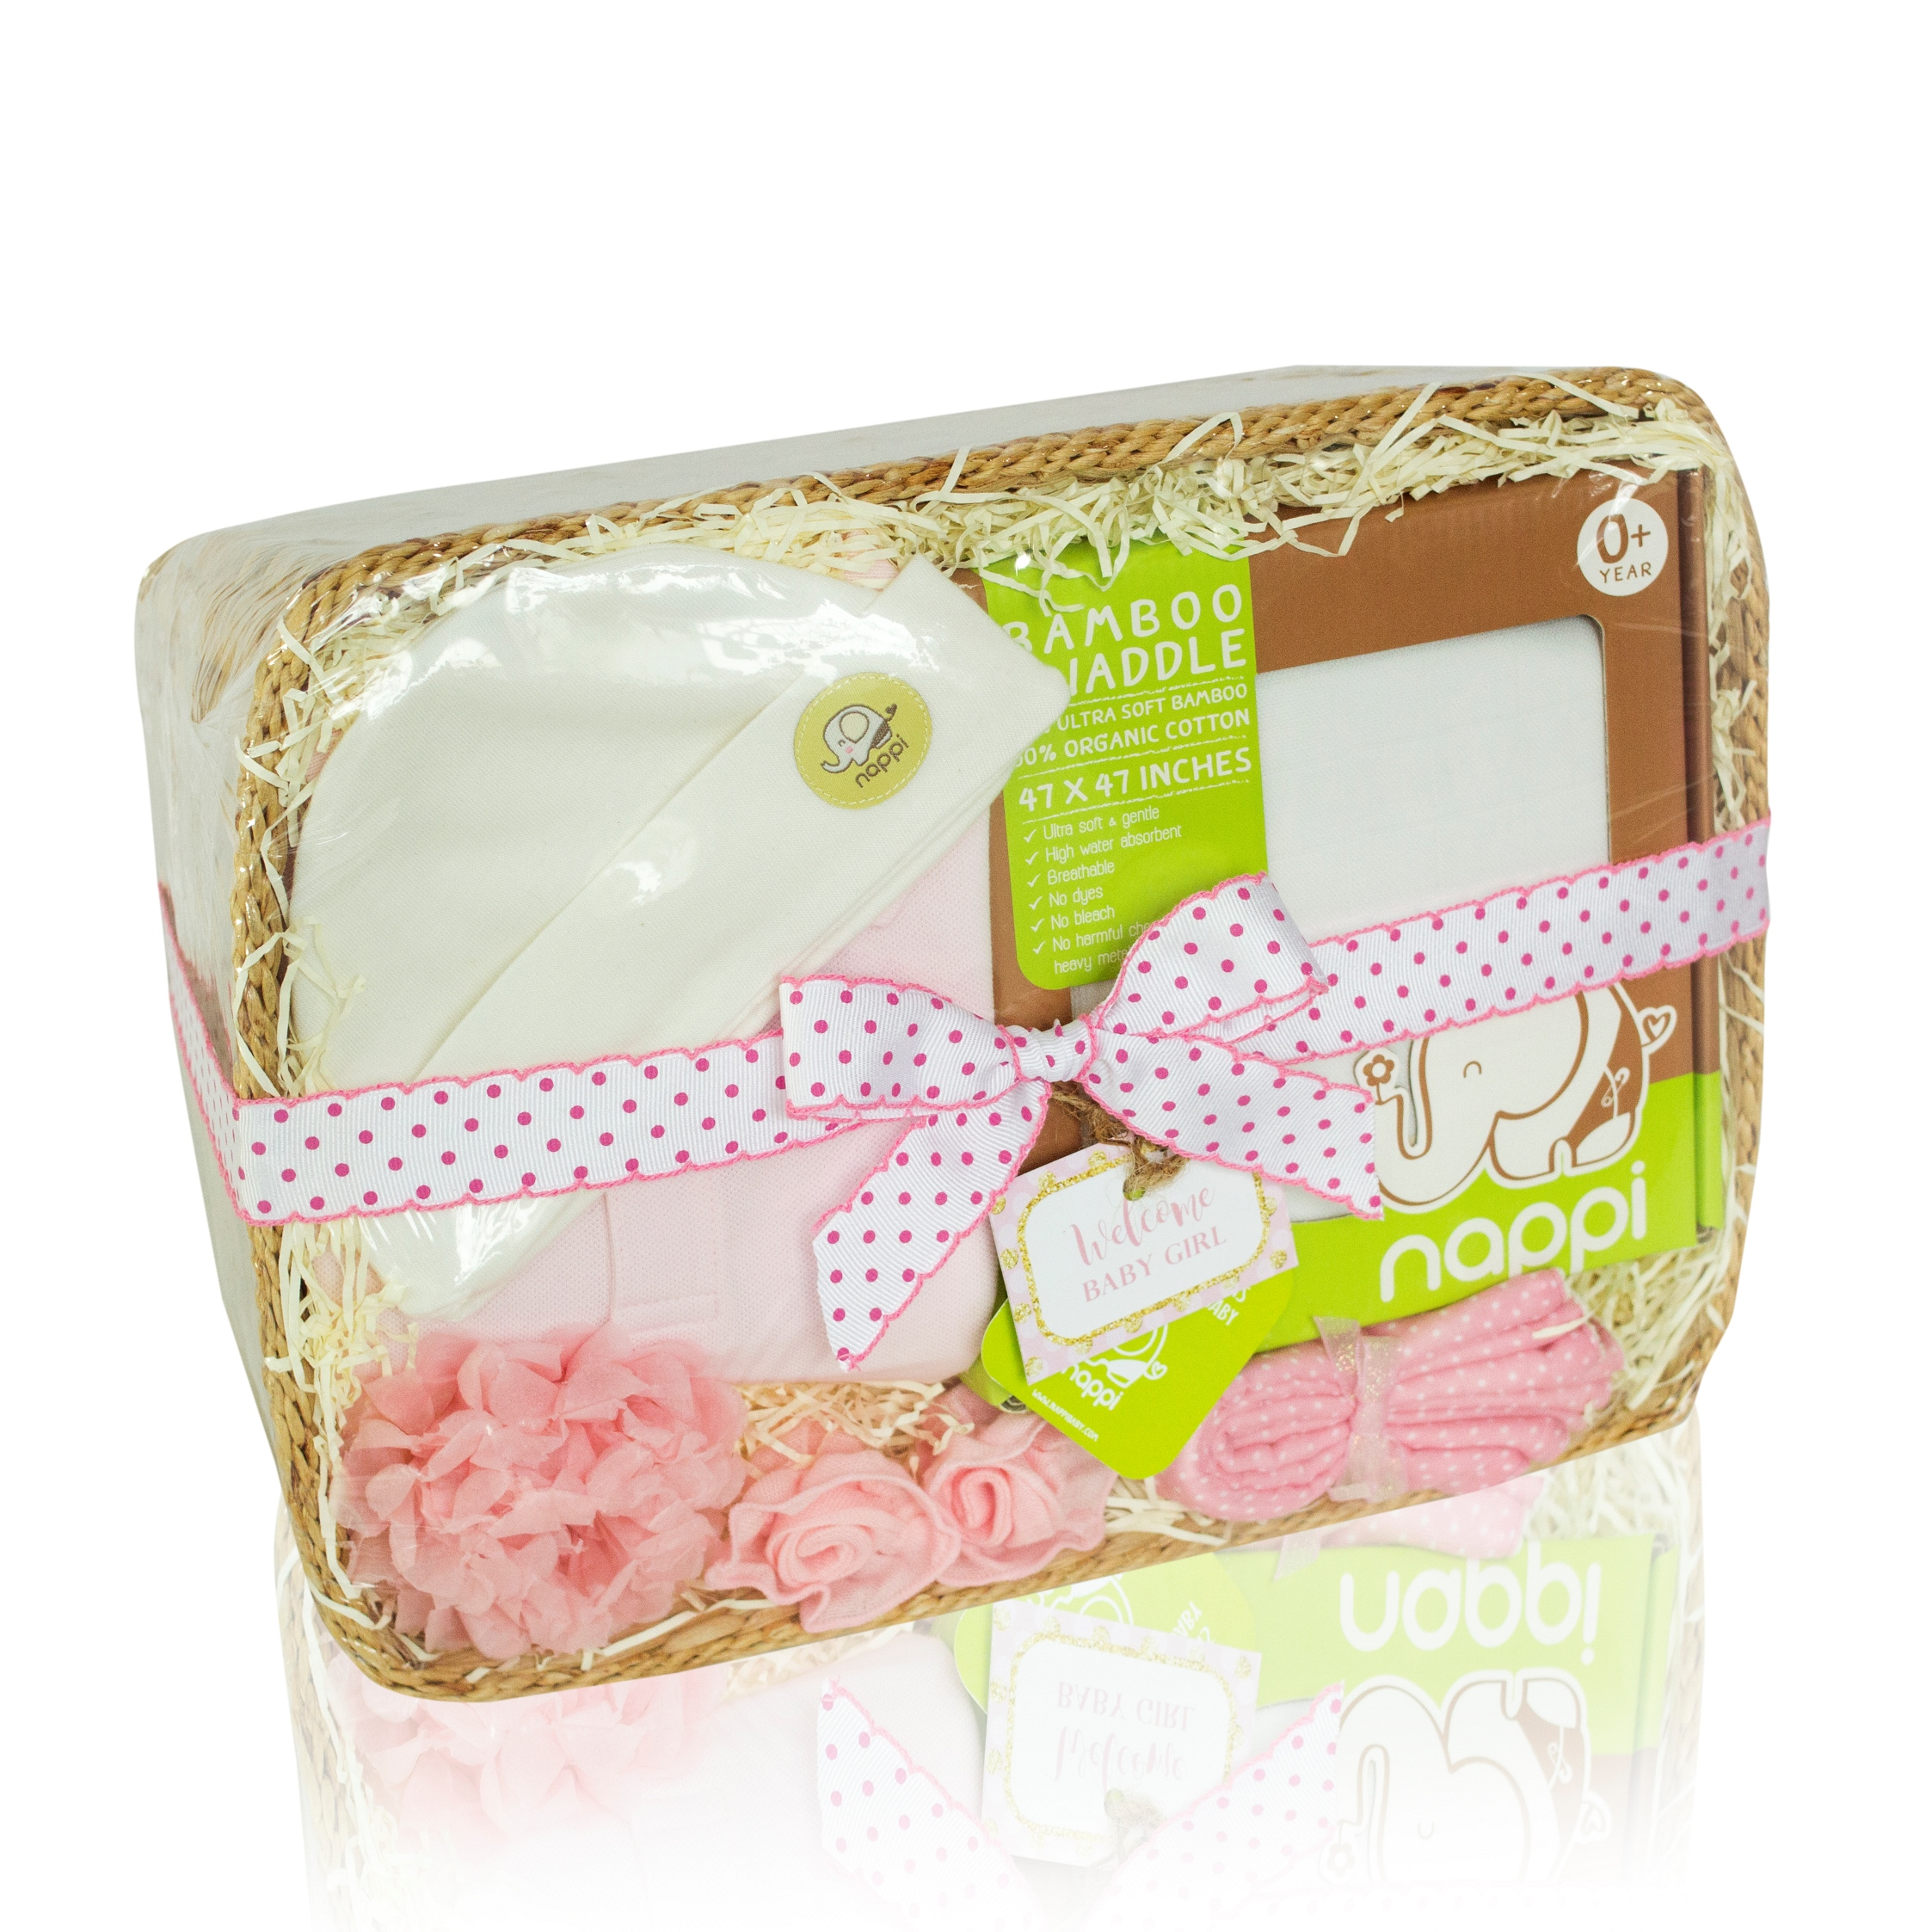 This @nappibabyph gift set was just a joy to receive - and touch!